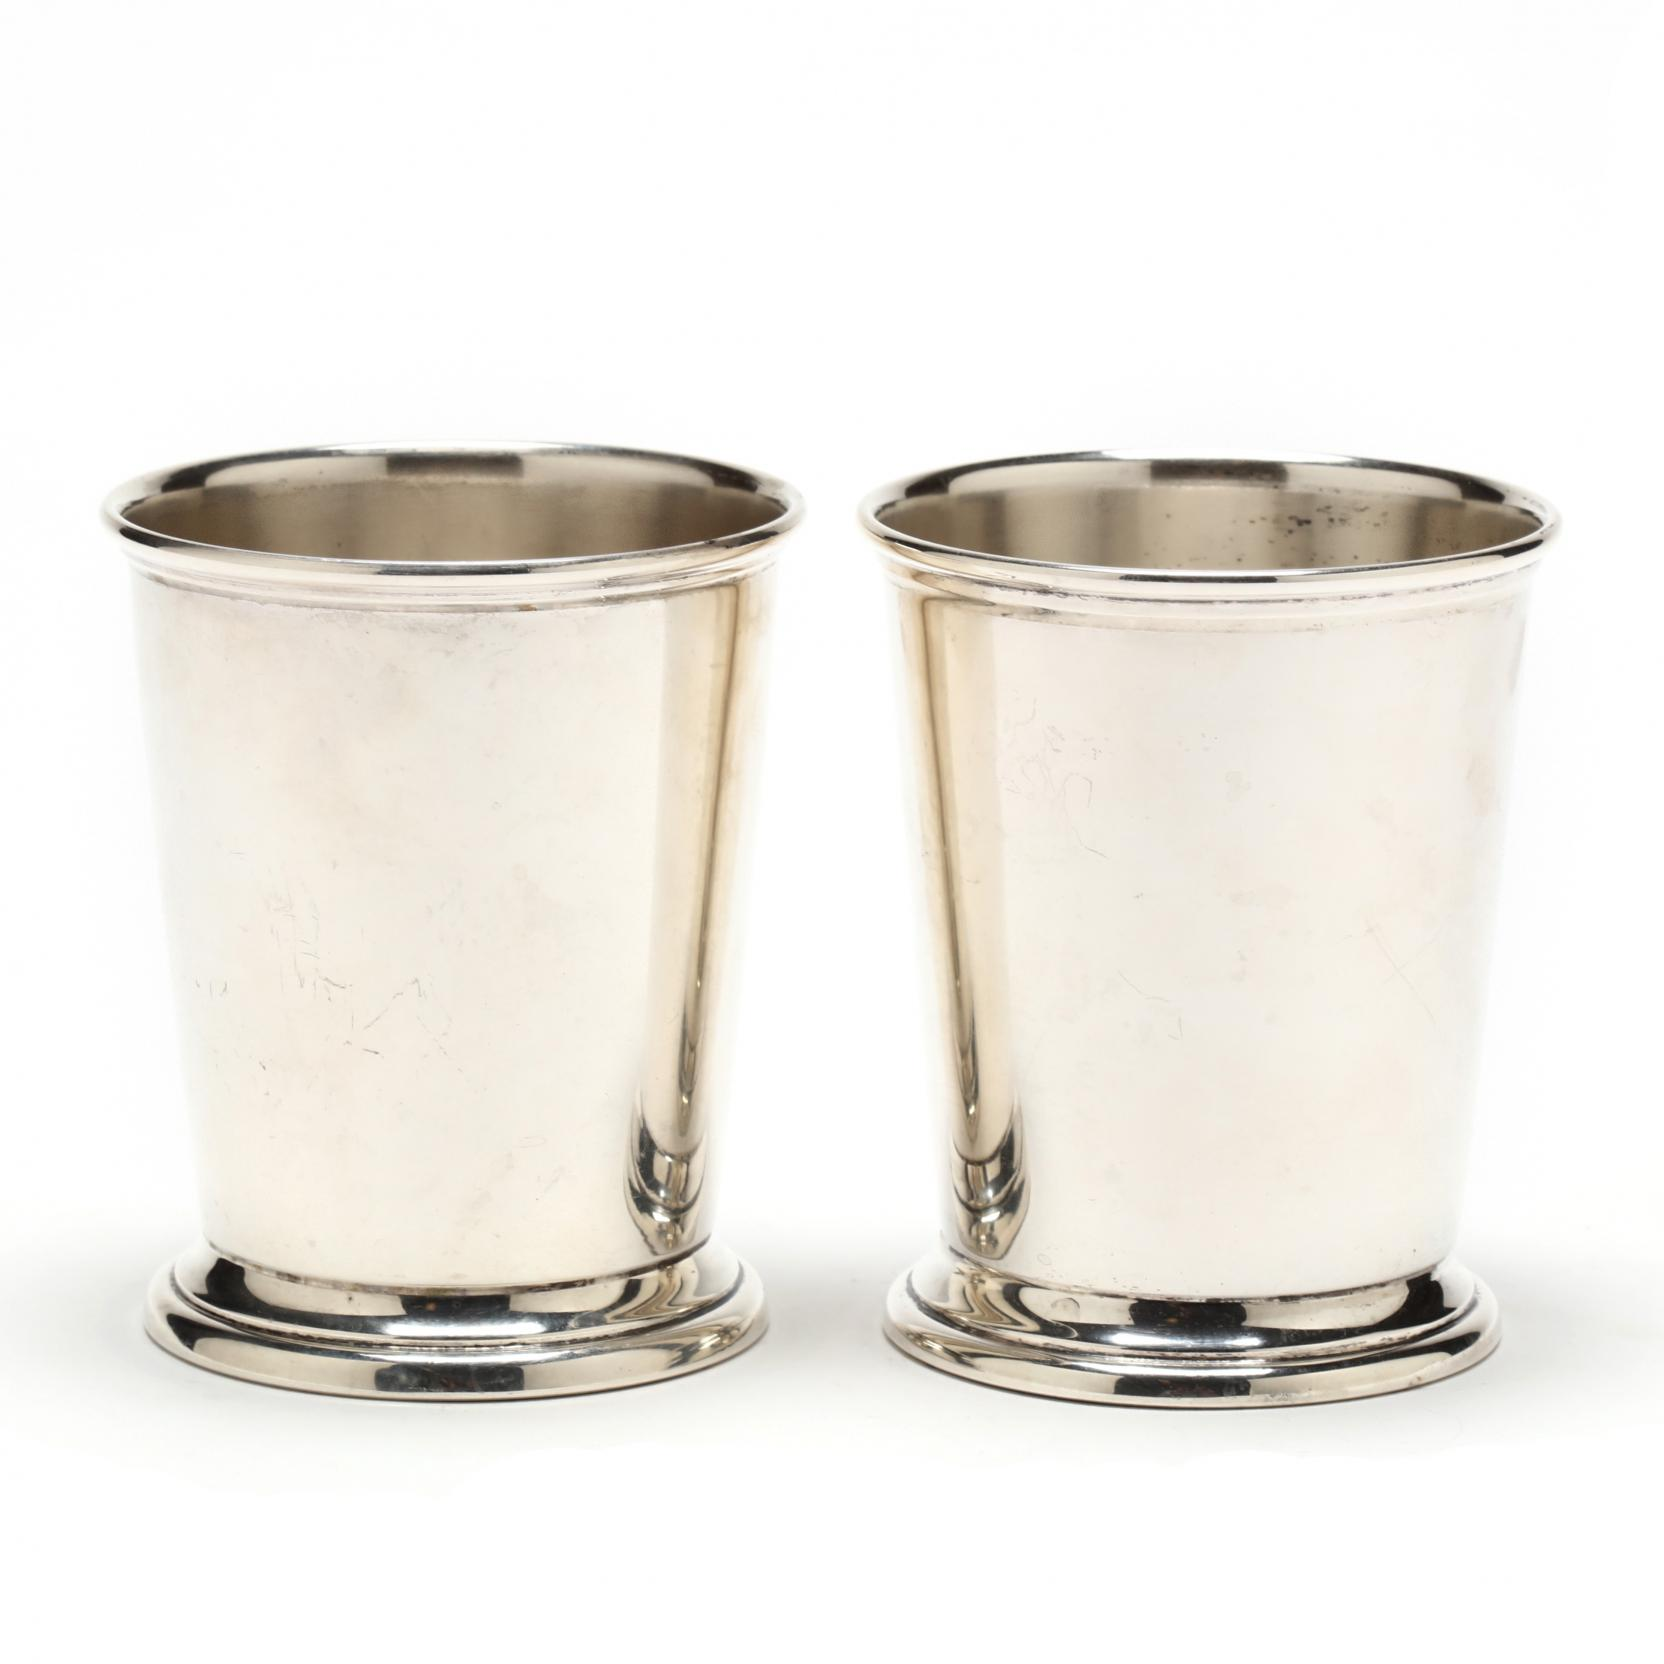 a-pair-of-sterling-silver-julep-cups